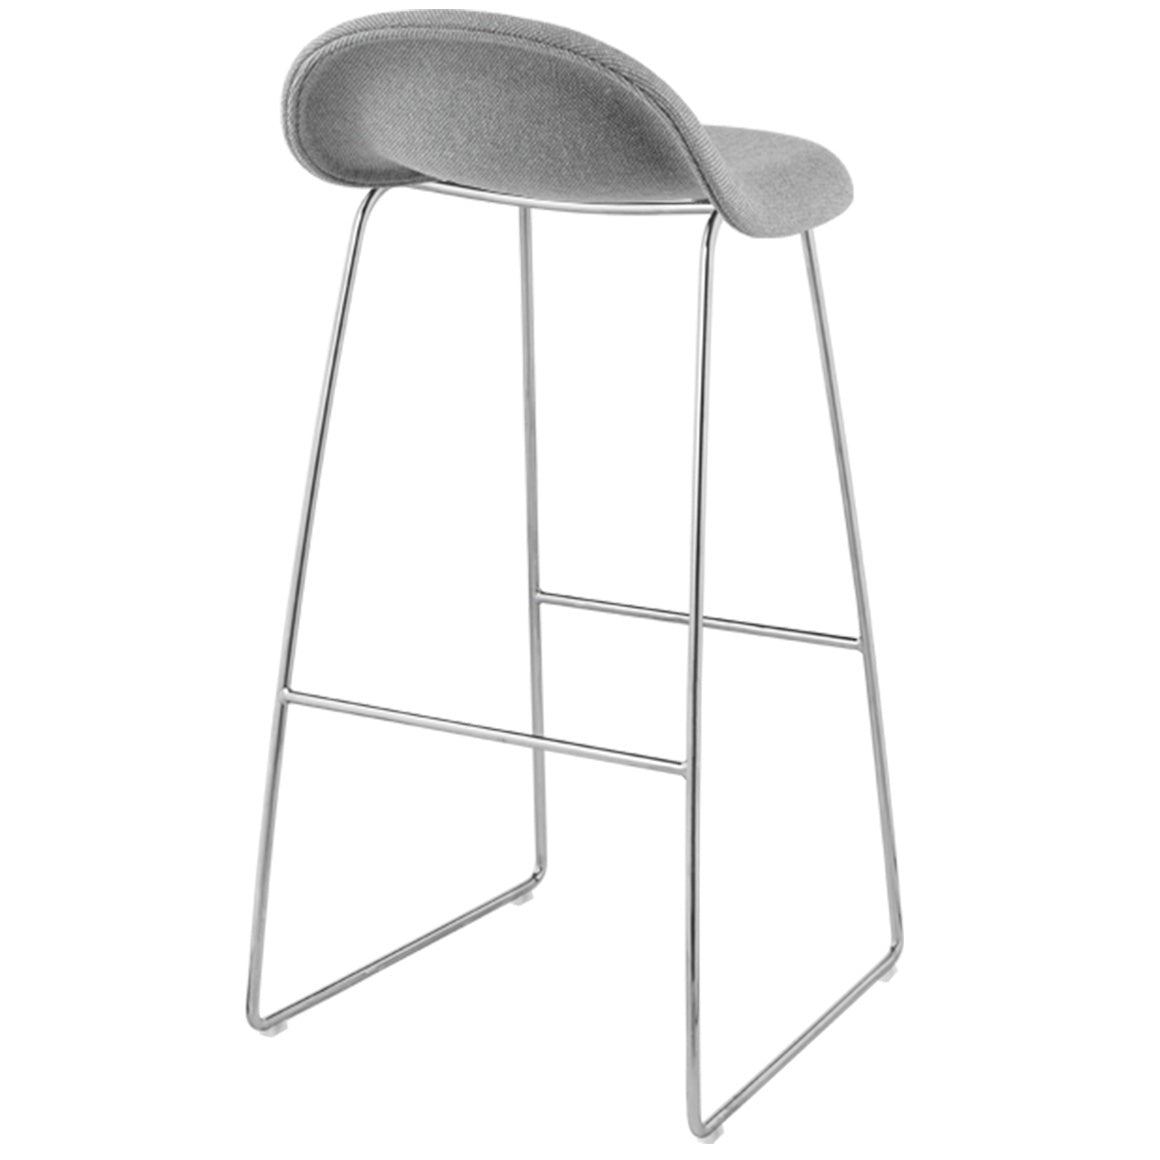 GUBI 3 STOOL-CHROME BASE - Eclectic Cool  - 16